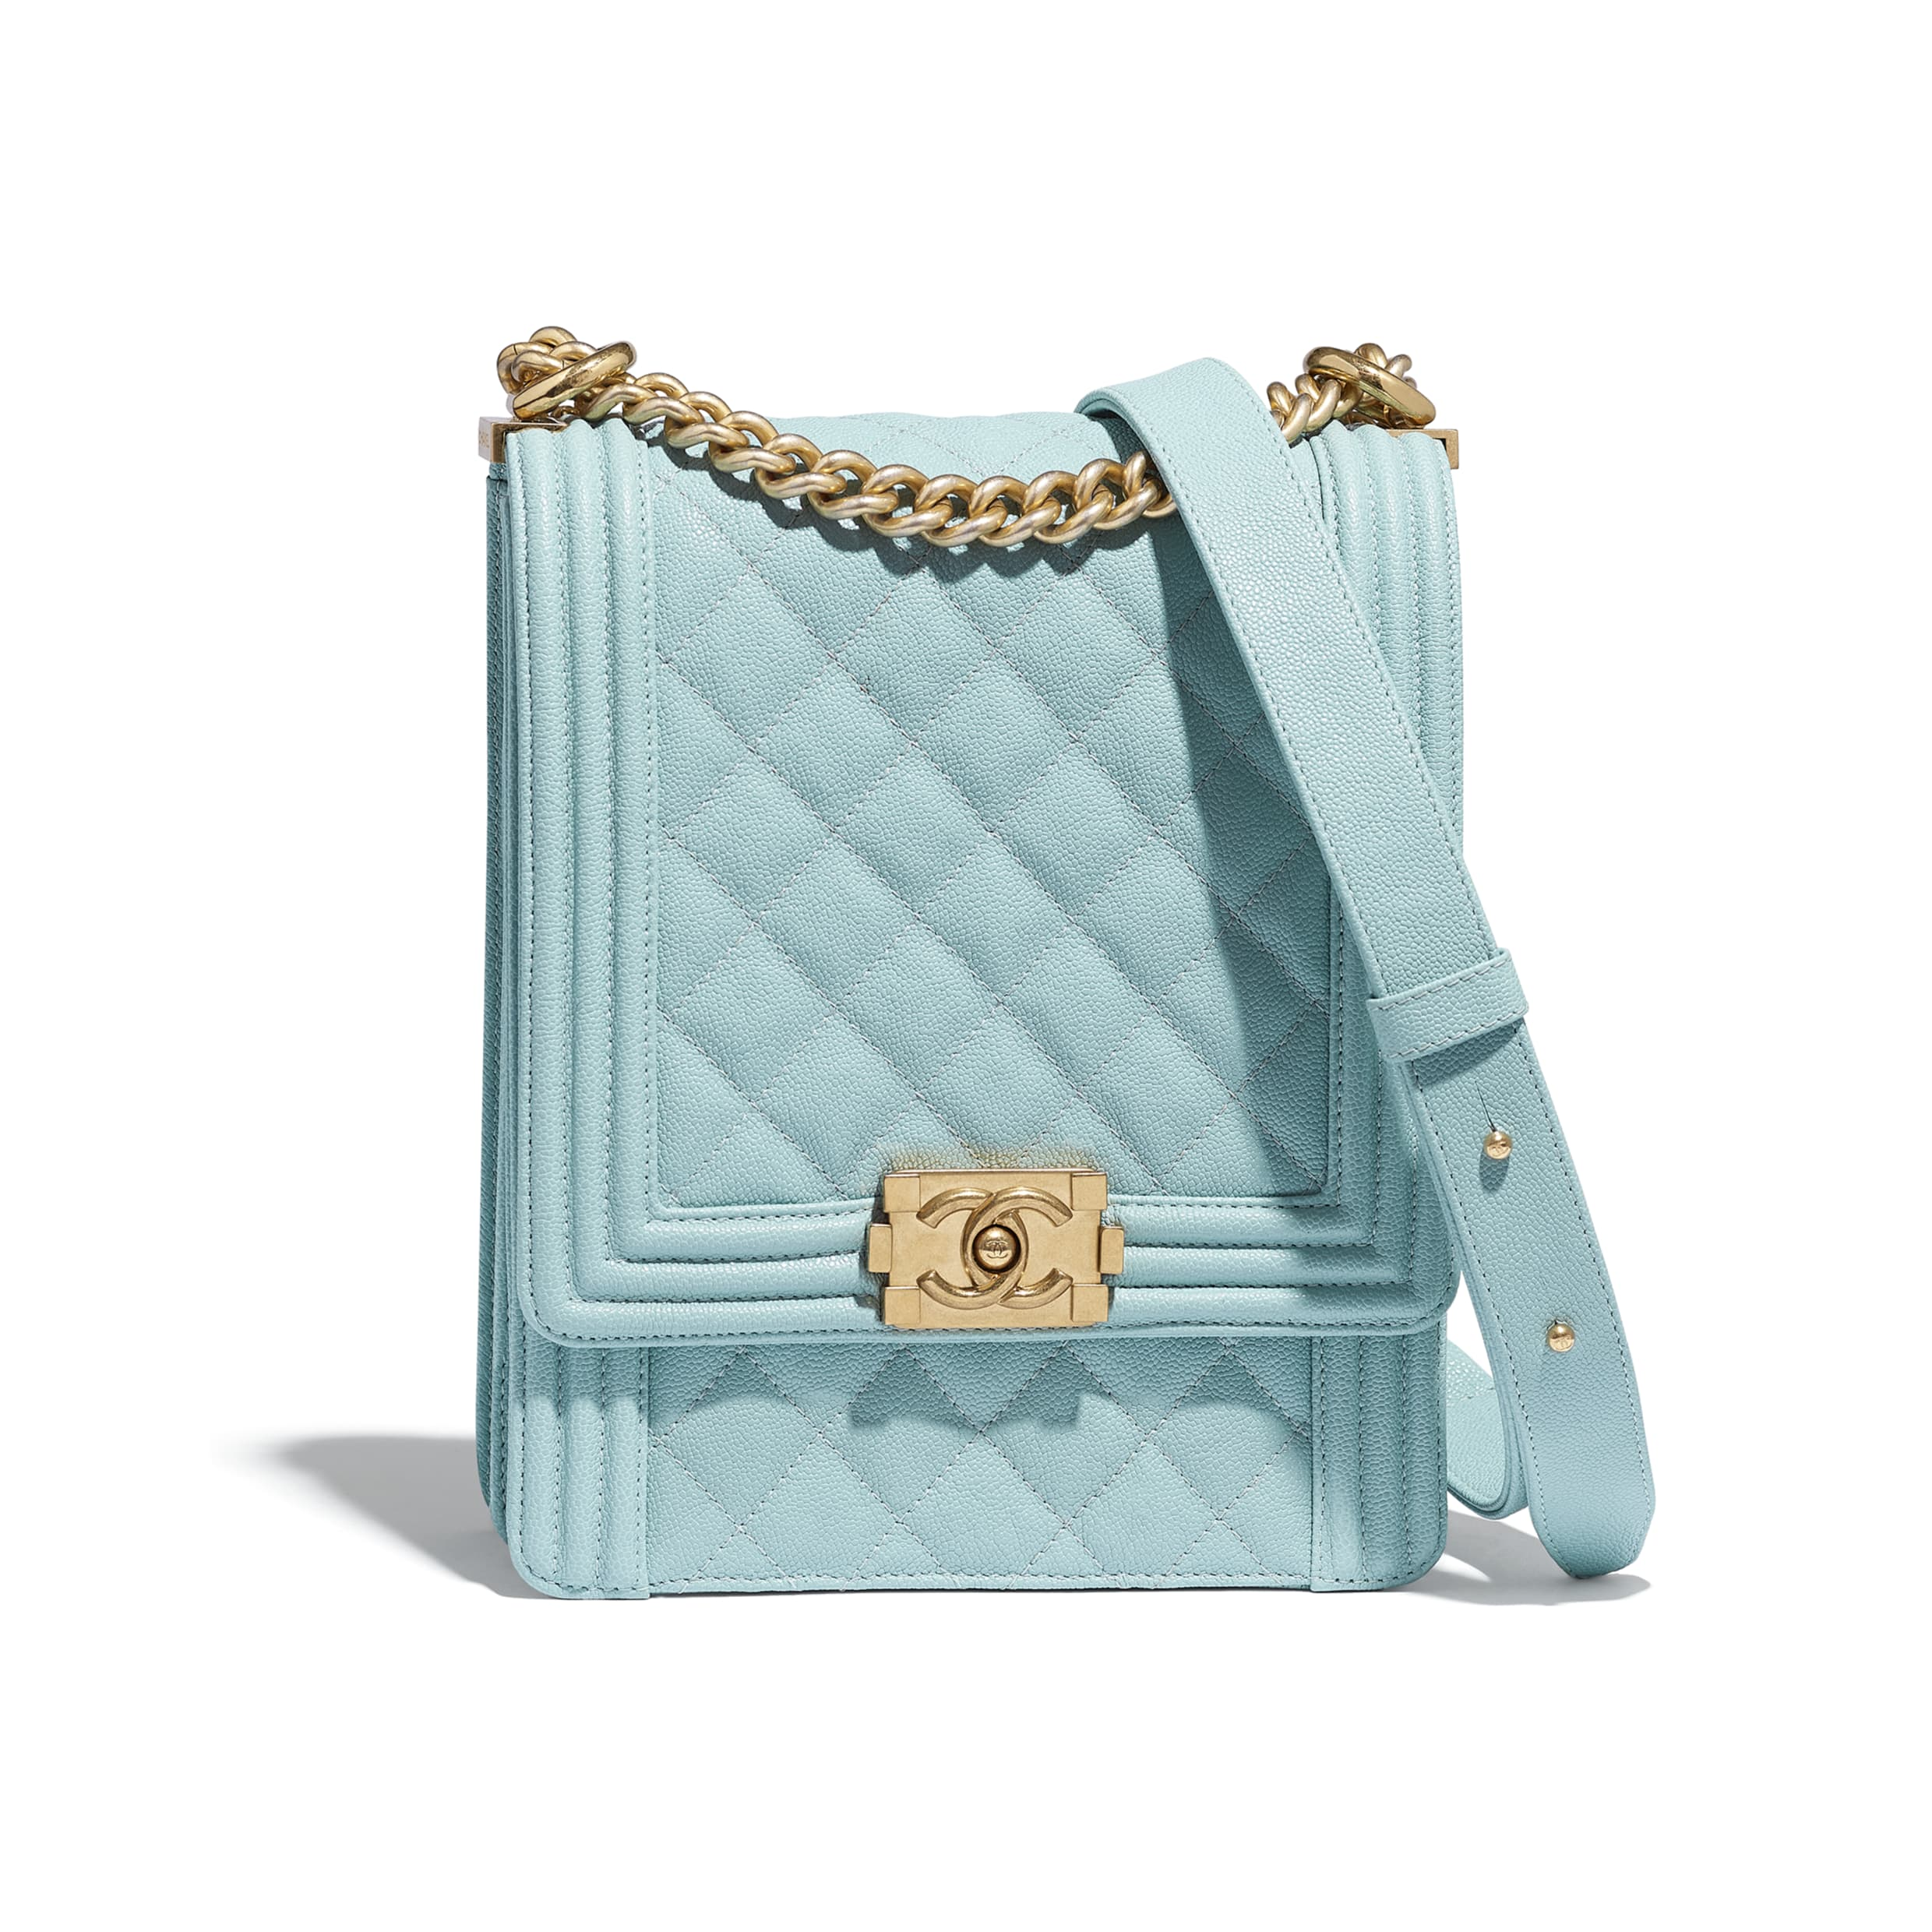 CHANEL Light Blue Boy Bag Not A Black Friday Replica 130